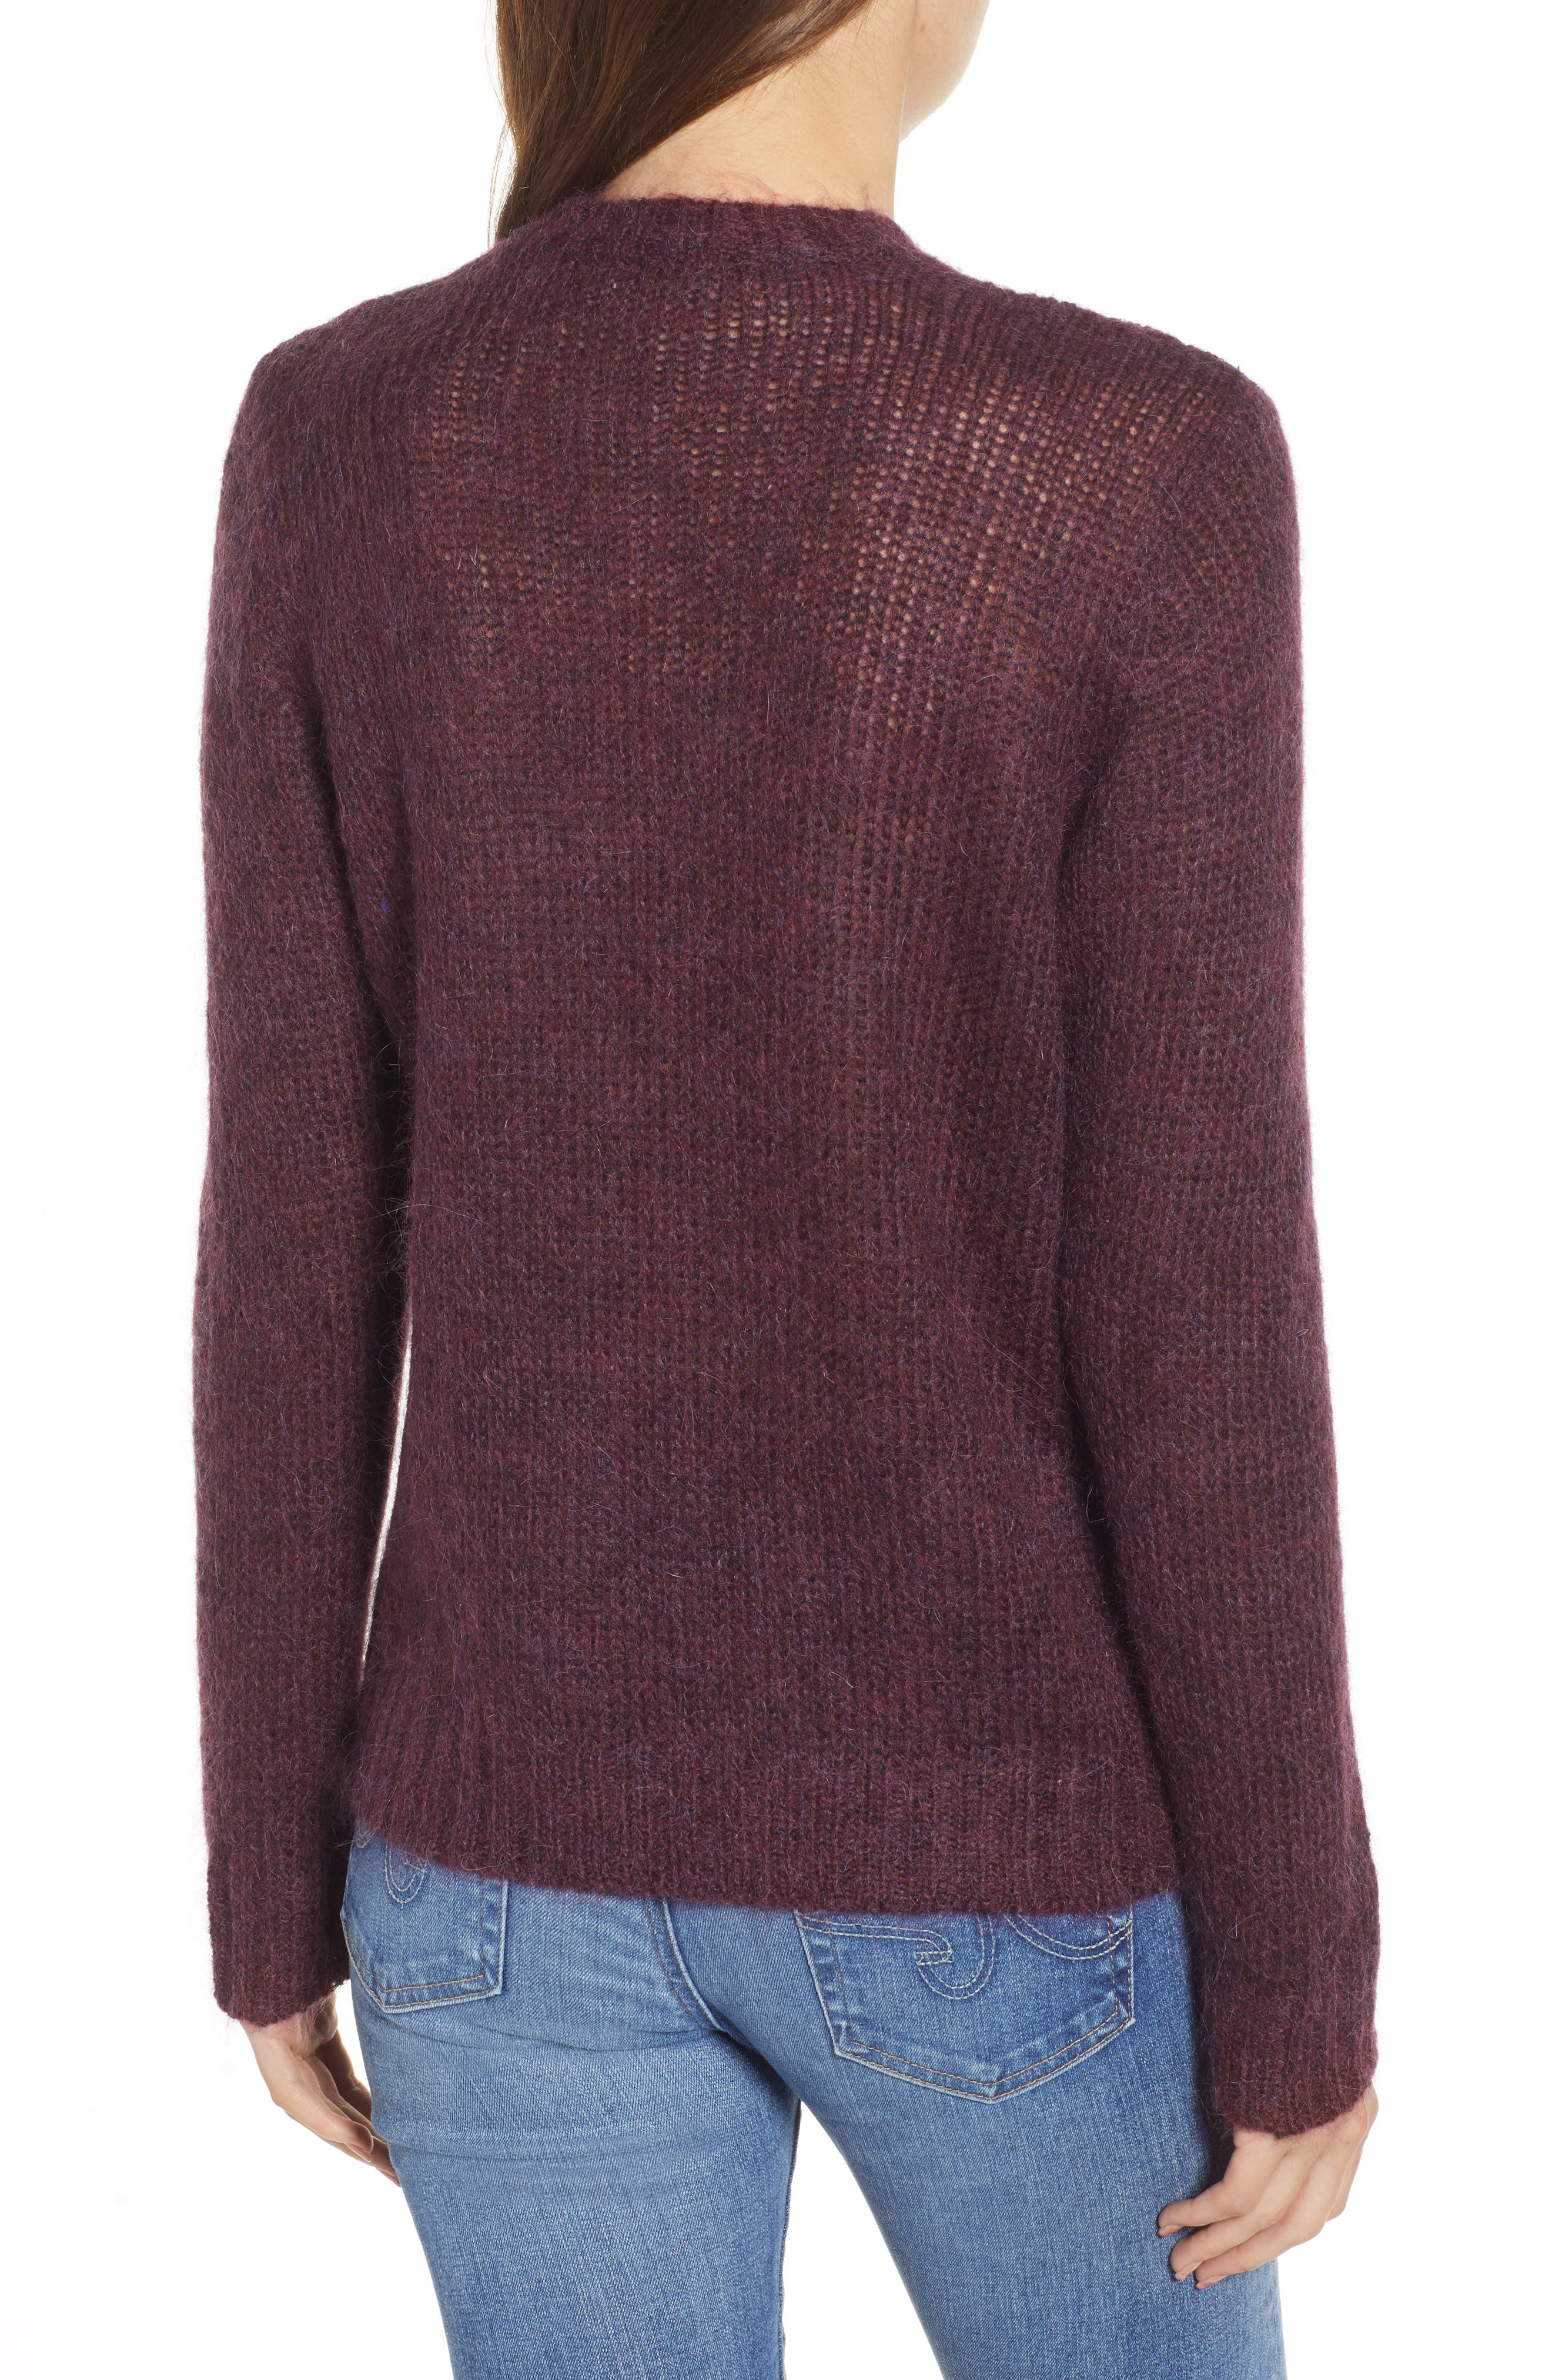 Ansley Crewneck Sweater,                             Alternate thumbnail 2, color,                             RICH CARMINE